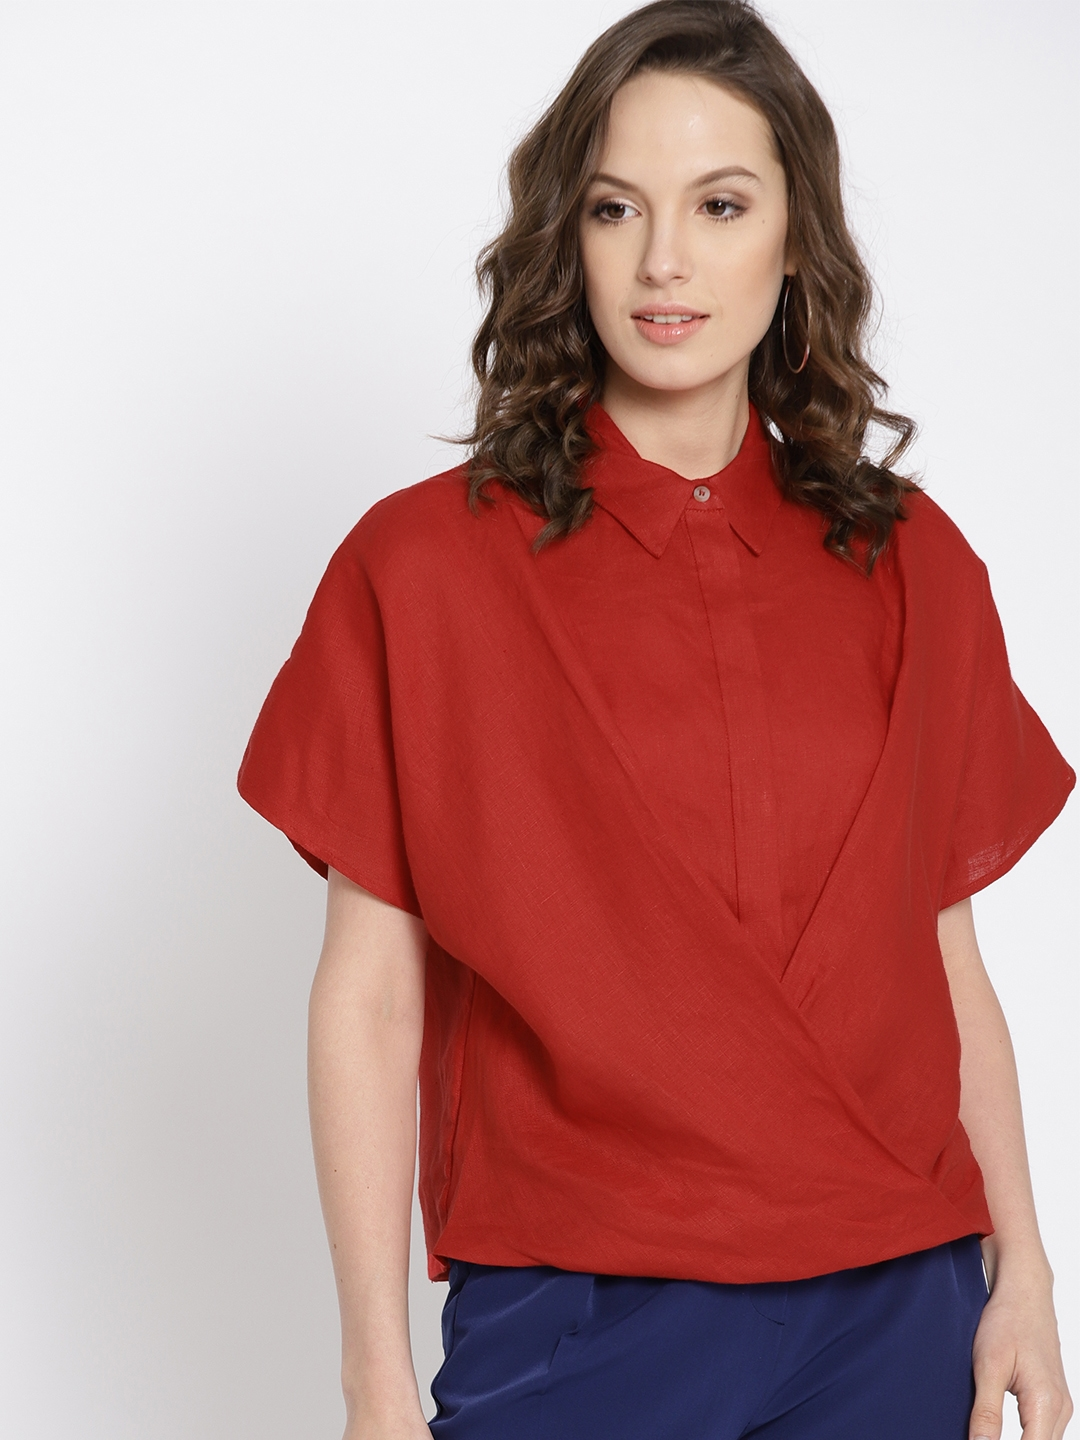 84d84cd0e6 Buy MANGO Women Red Solid Linen Shirt Style Top - Tops for Women ...